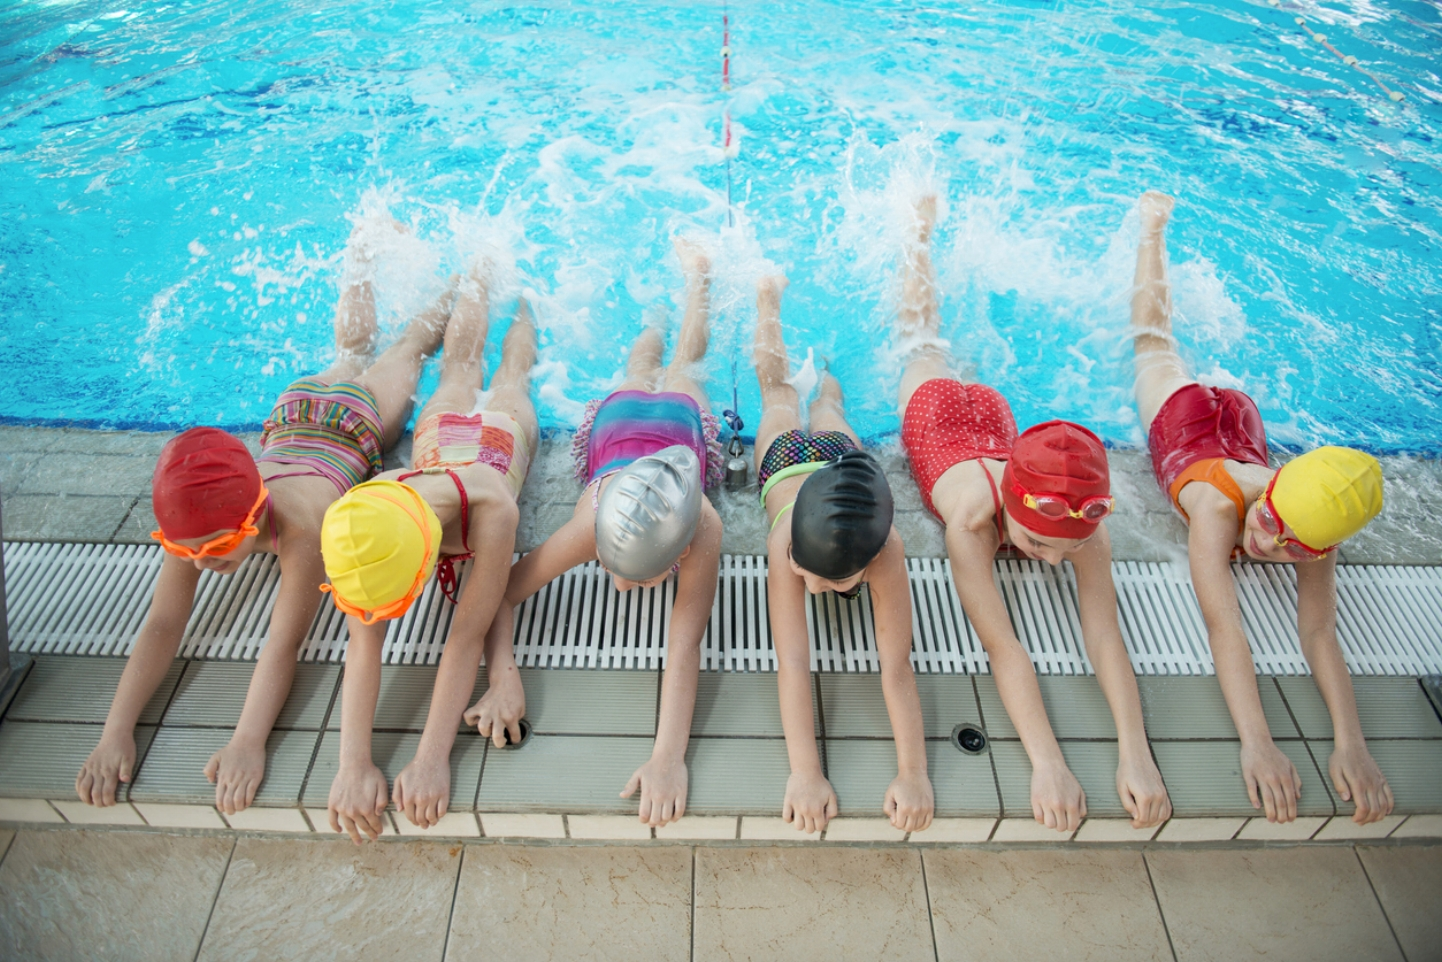 happy-children-kids-group-at-swimming-pool-class-learning-to-swim-669788648_1256x838.jpeg